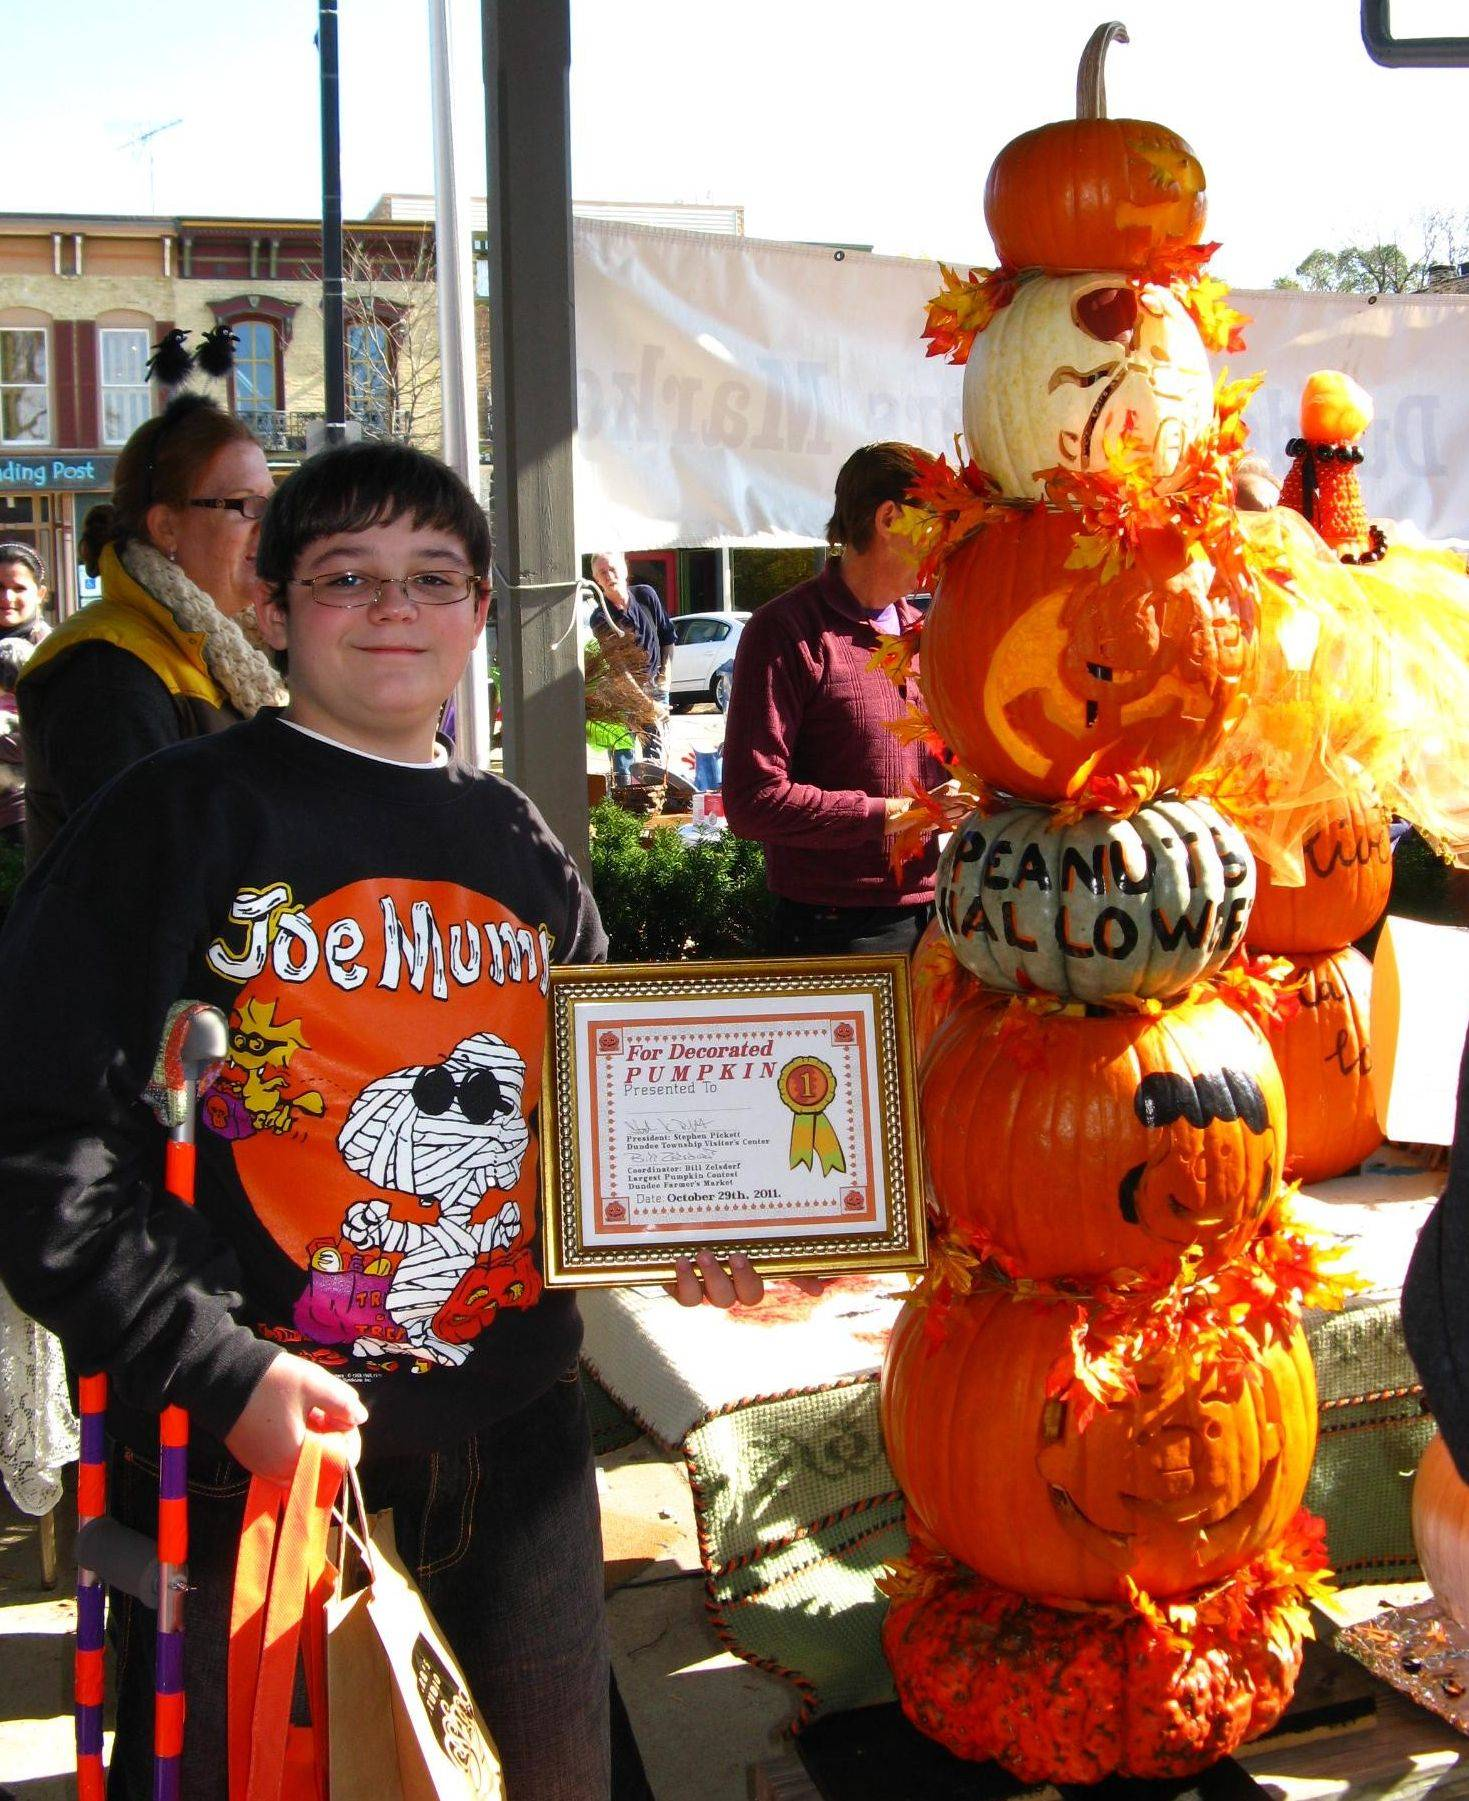 First-place winner in the 13th annual Great Pumpkin Contest hosted by the Dundee Township Visitor's Center went to Ryan Saxon, 13, of Cary for his Peanuts Pumpkin Tower.